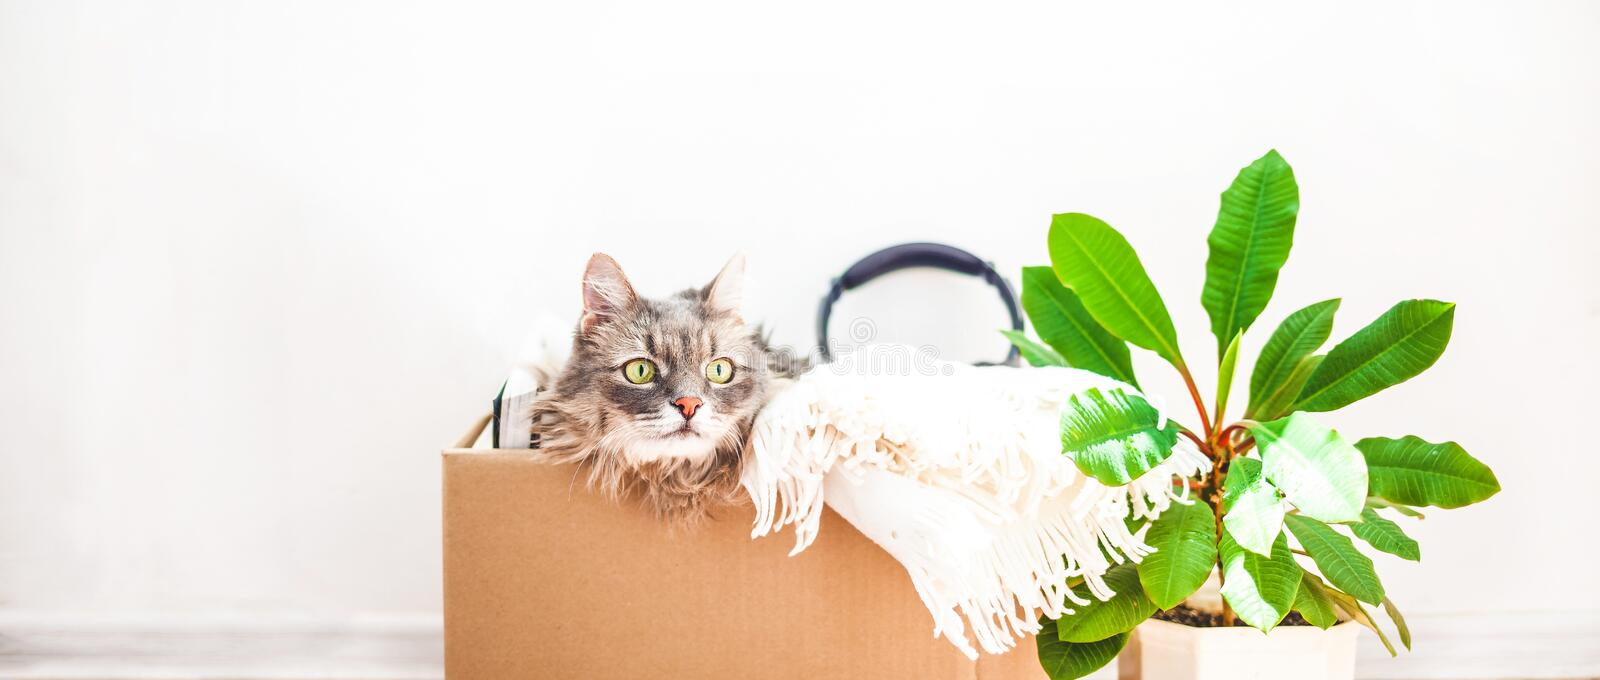 Boxes for moving with things, a cat in a box, a flower in a pot. Garage sale concept Copy space. Banner stock image